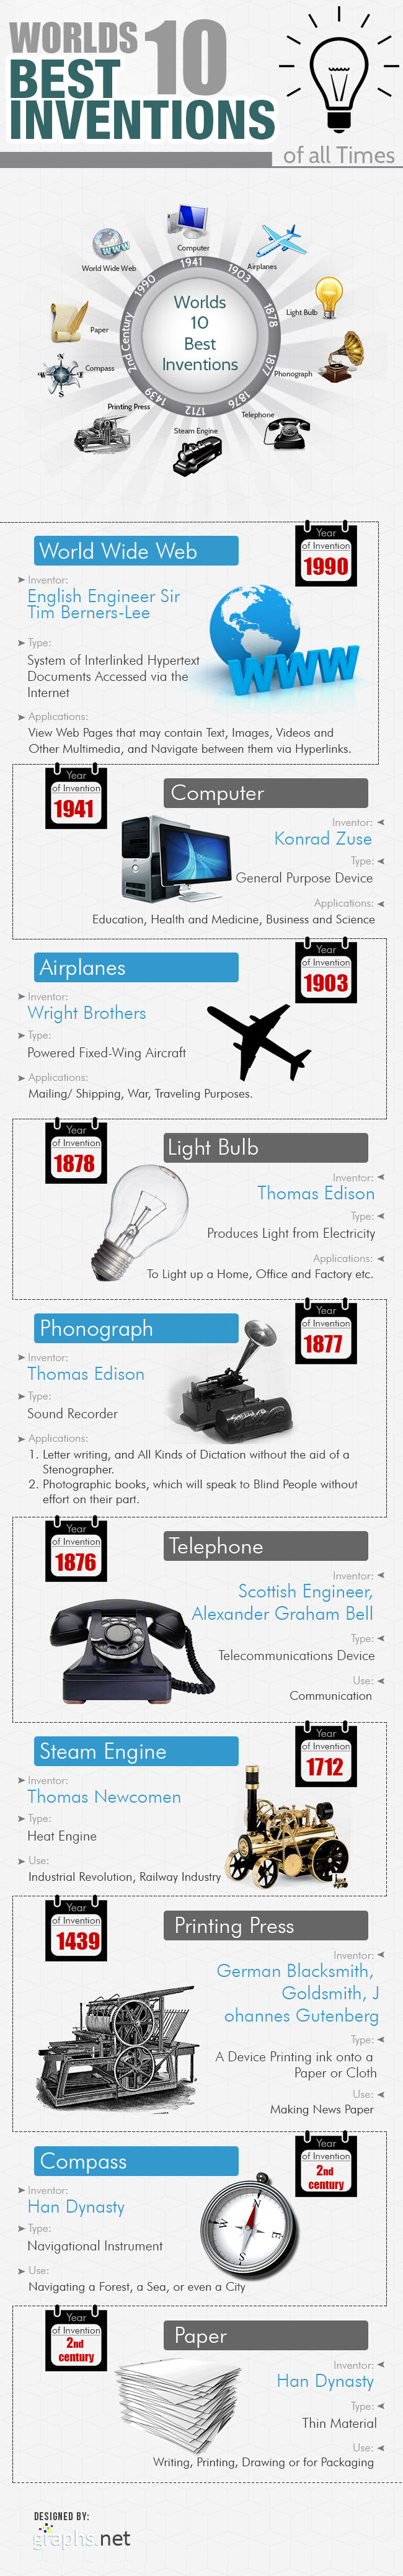 The Worlds 10 Best Inventions of all Times